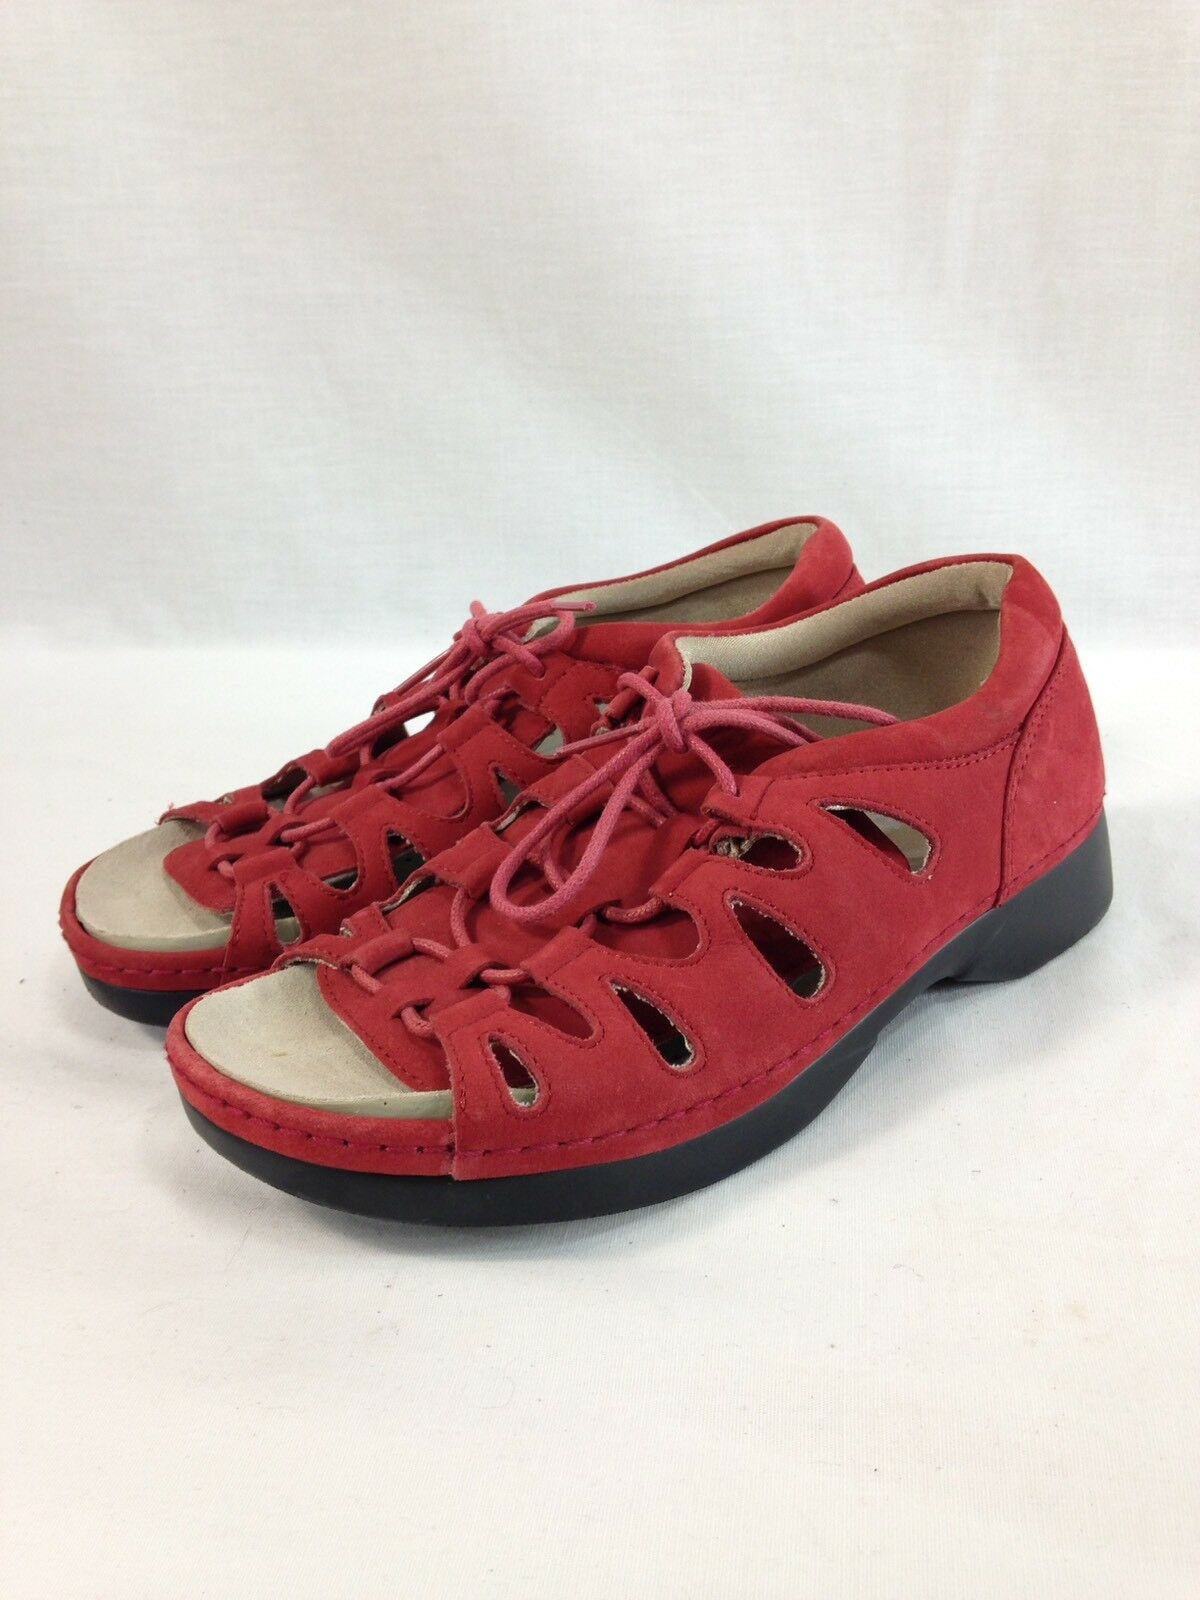 Propet Sandals shoes Womens 6 X(2E) Red Leather Suede Open Toe Lace Up Comfort